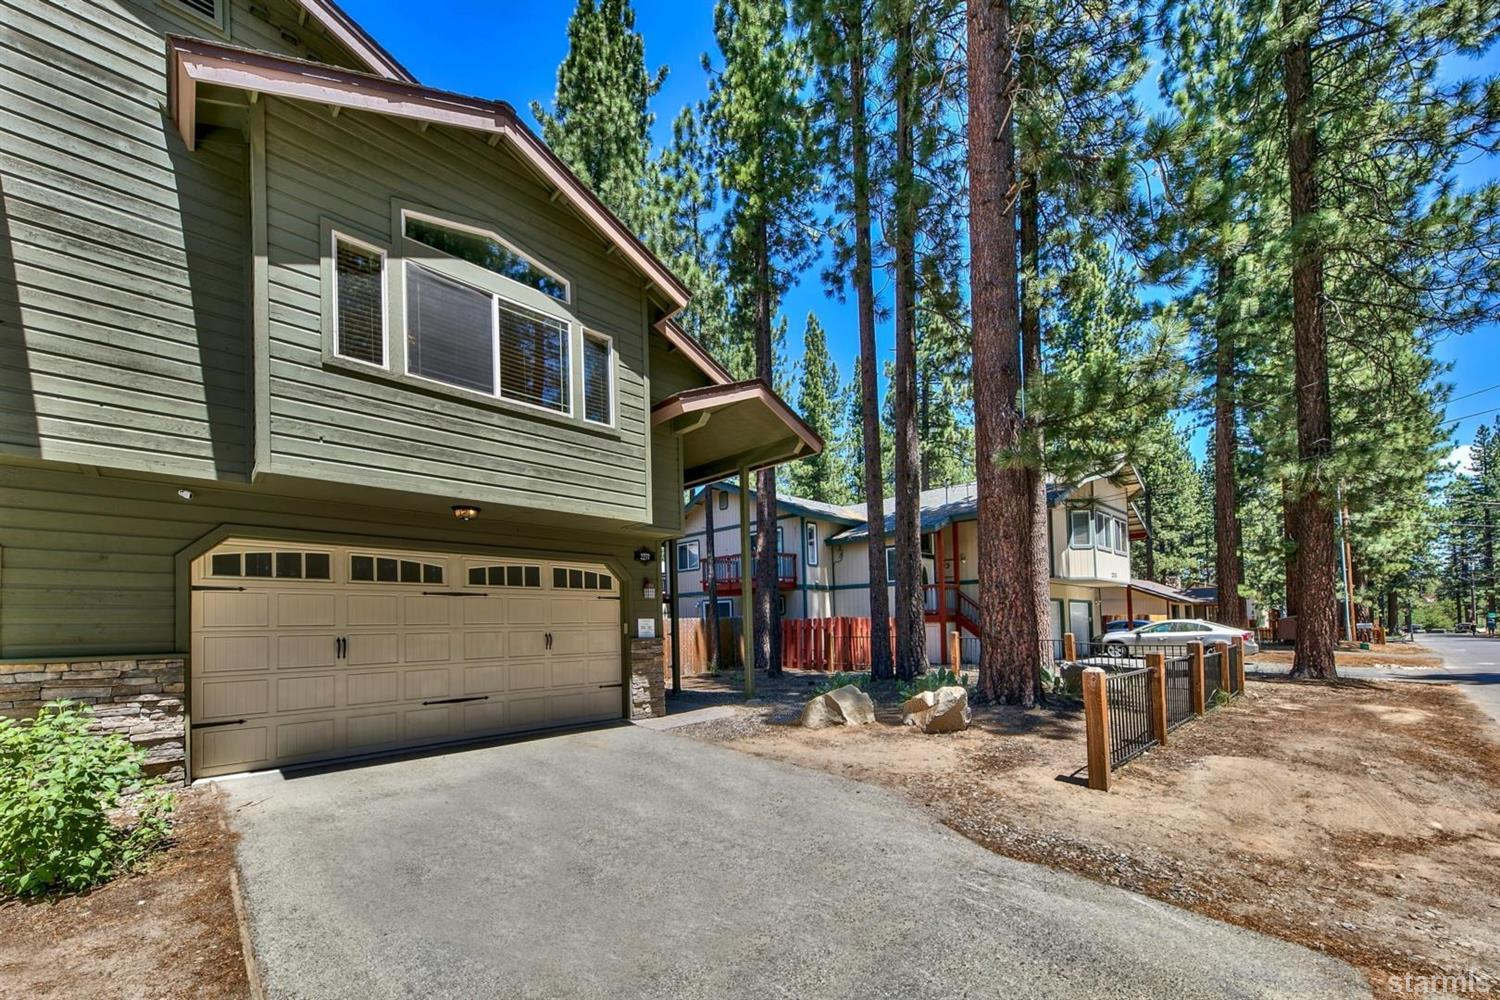 Image for 2277 Eloise Avenue, South Lake Tahoe, CA 96150